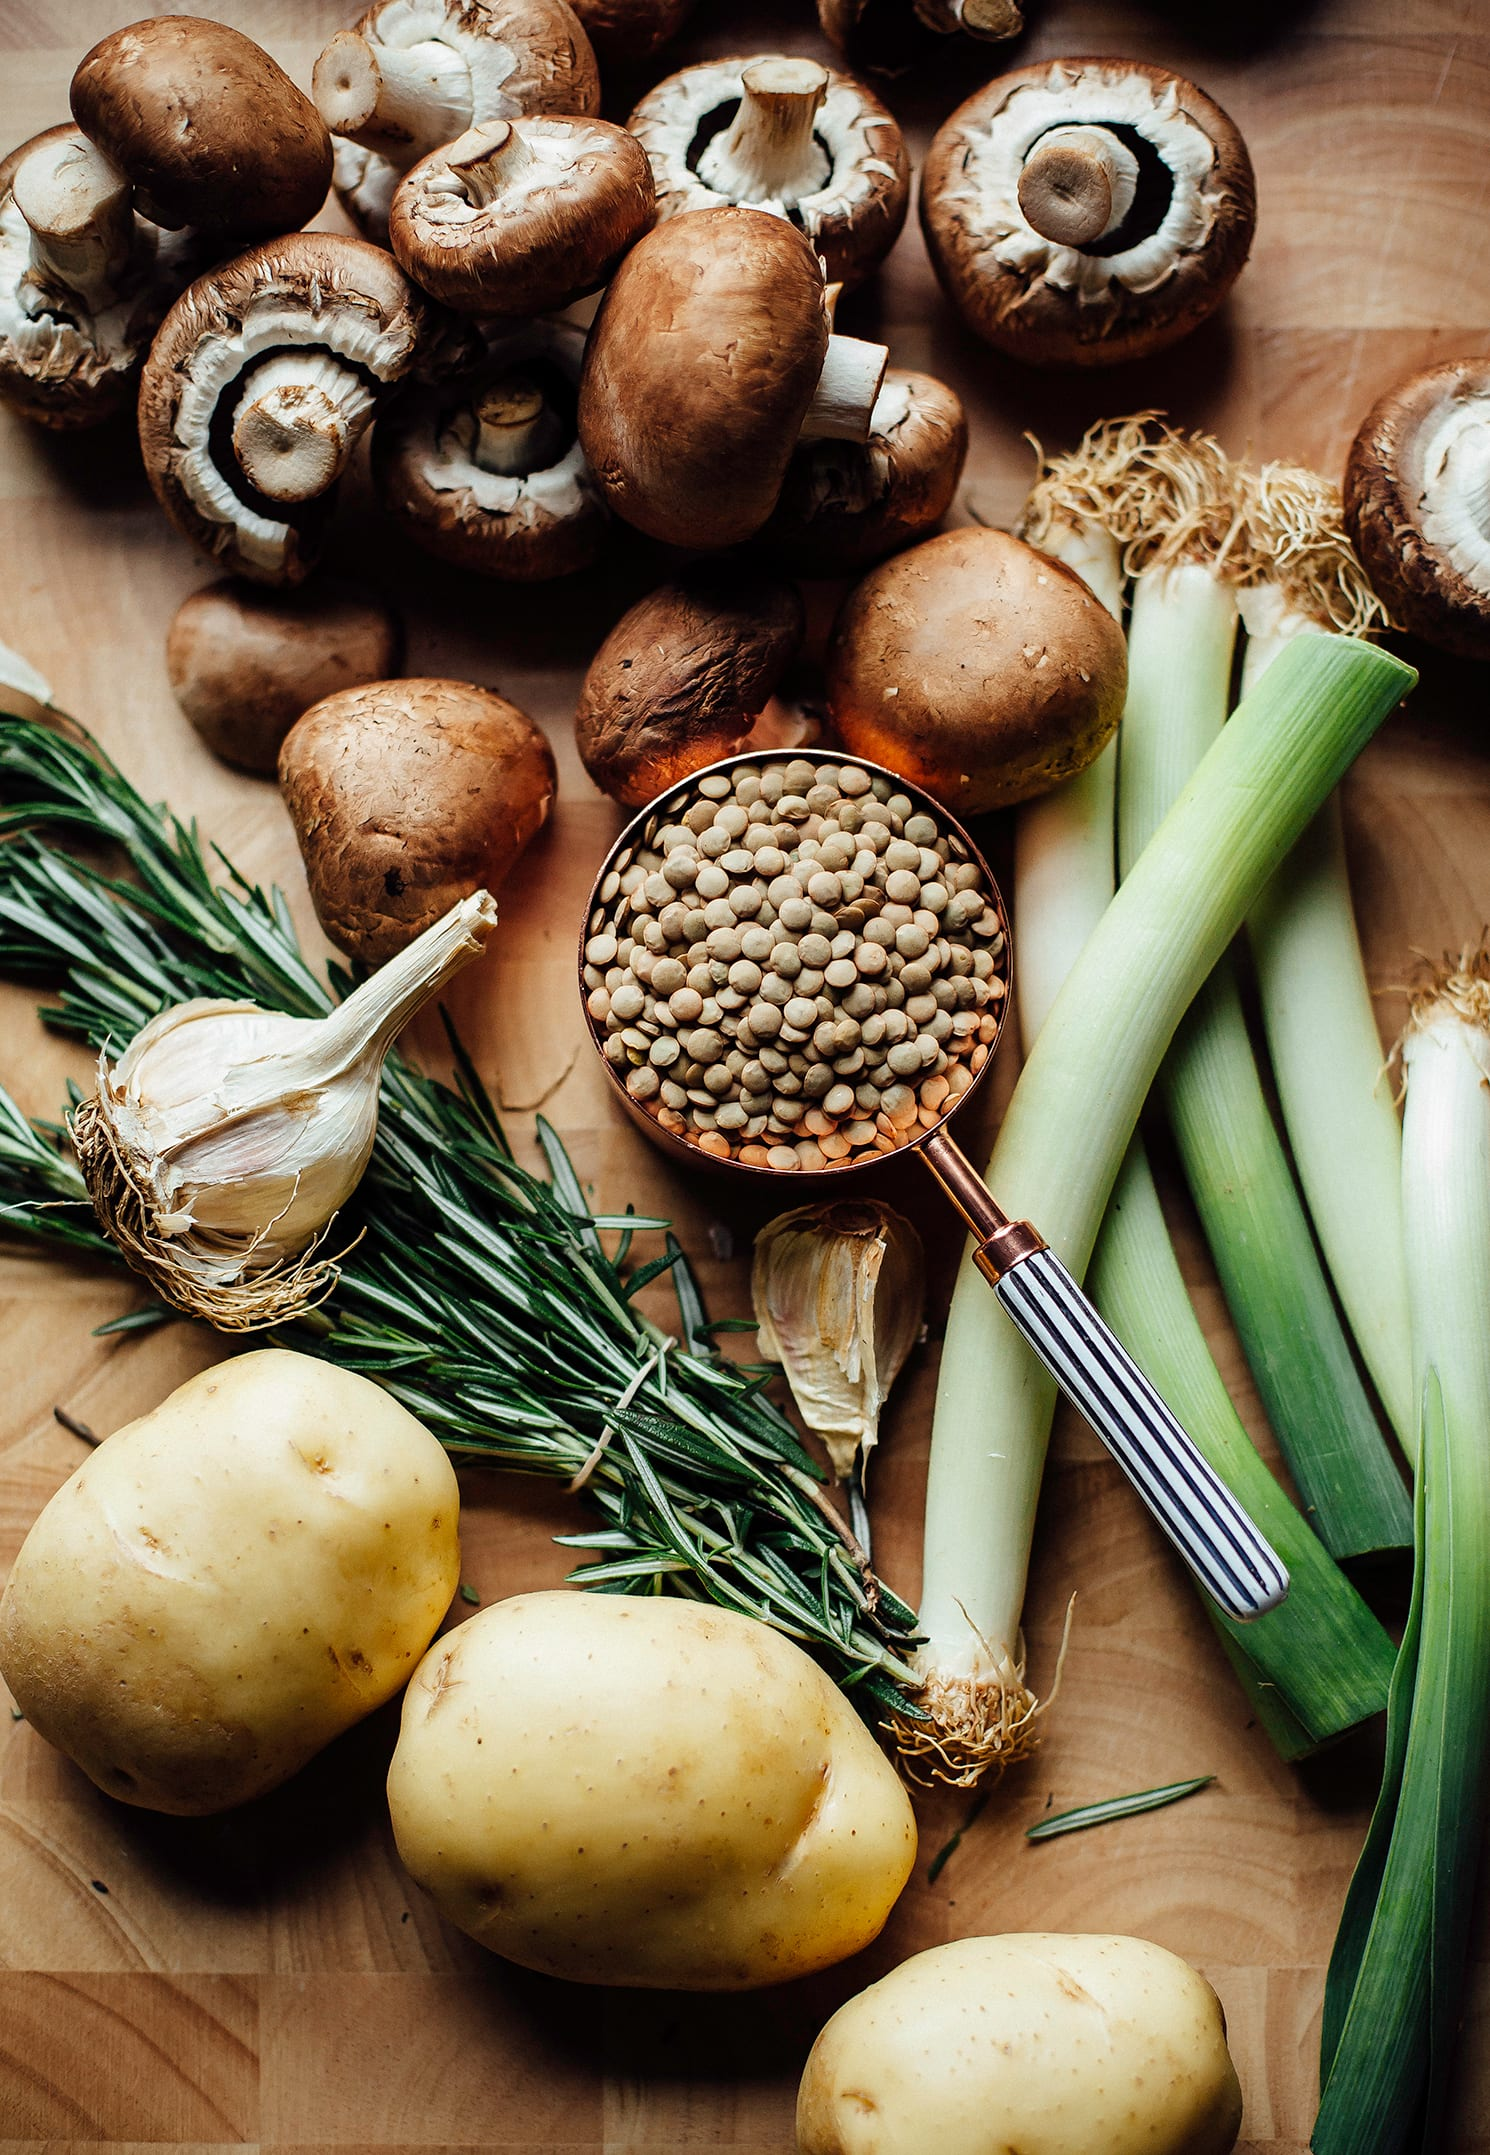 An overhead shot of ingredients for a lentil stew.